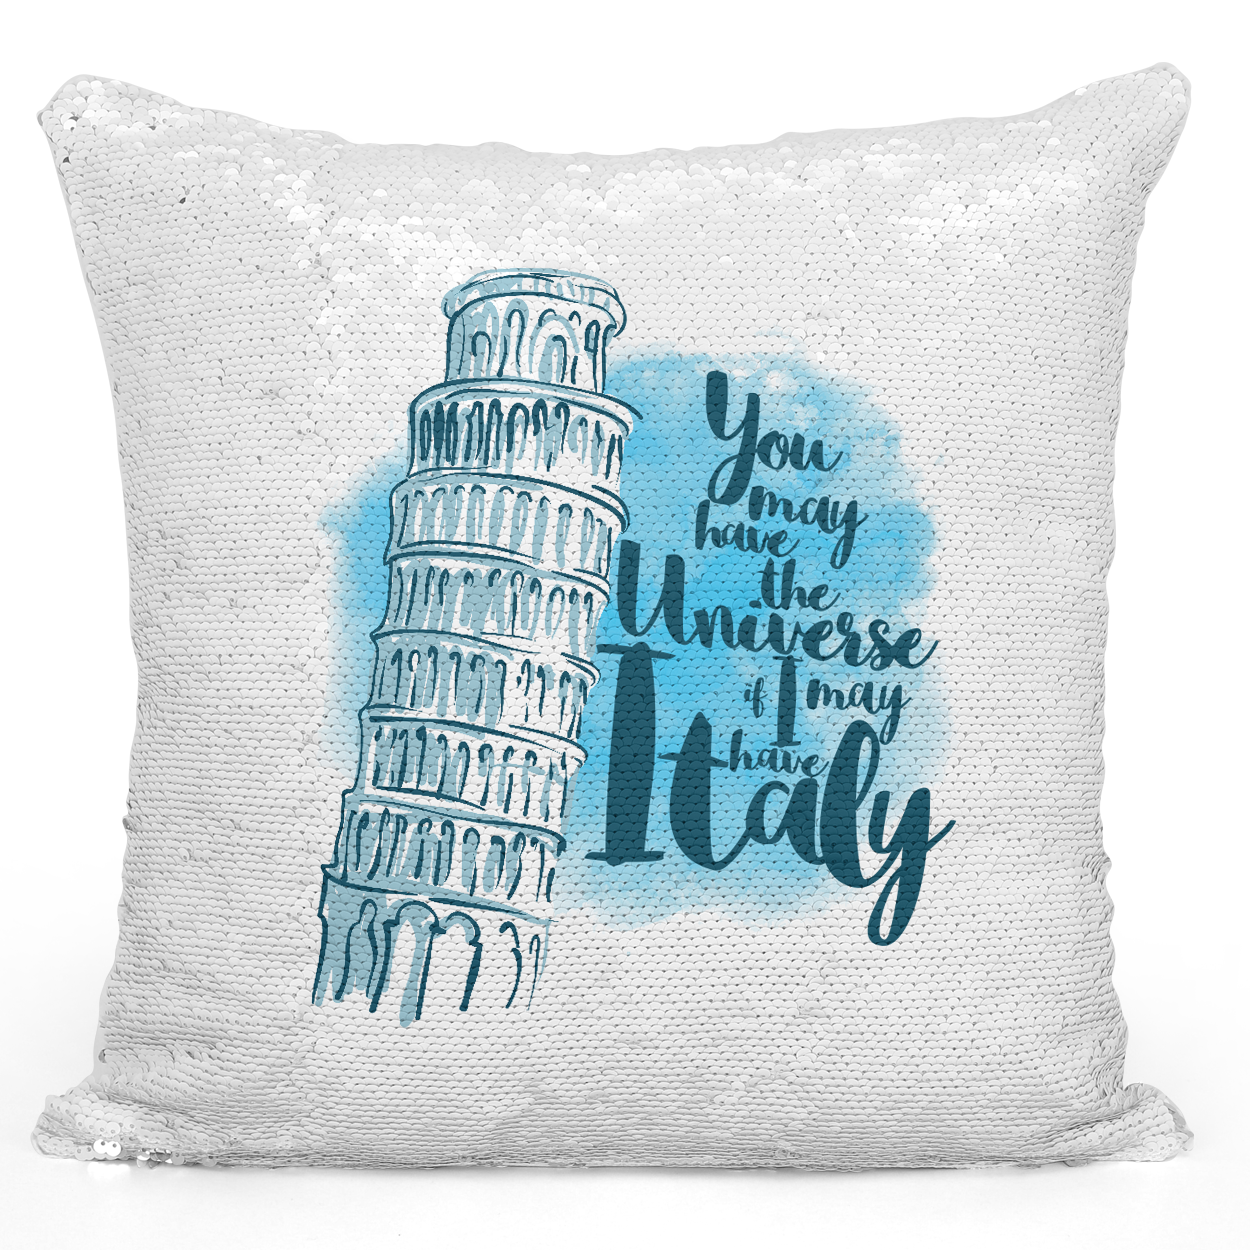 Sequin Pillow Magic Mermaid Throw Pillow Italy Tower Of Pisa Famous World Destination Vacation Pillow - Premium 100% Polyester 16 x 16 inch Square Modern Livingroom Decorative Pillow Loud Universe